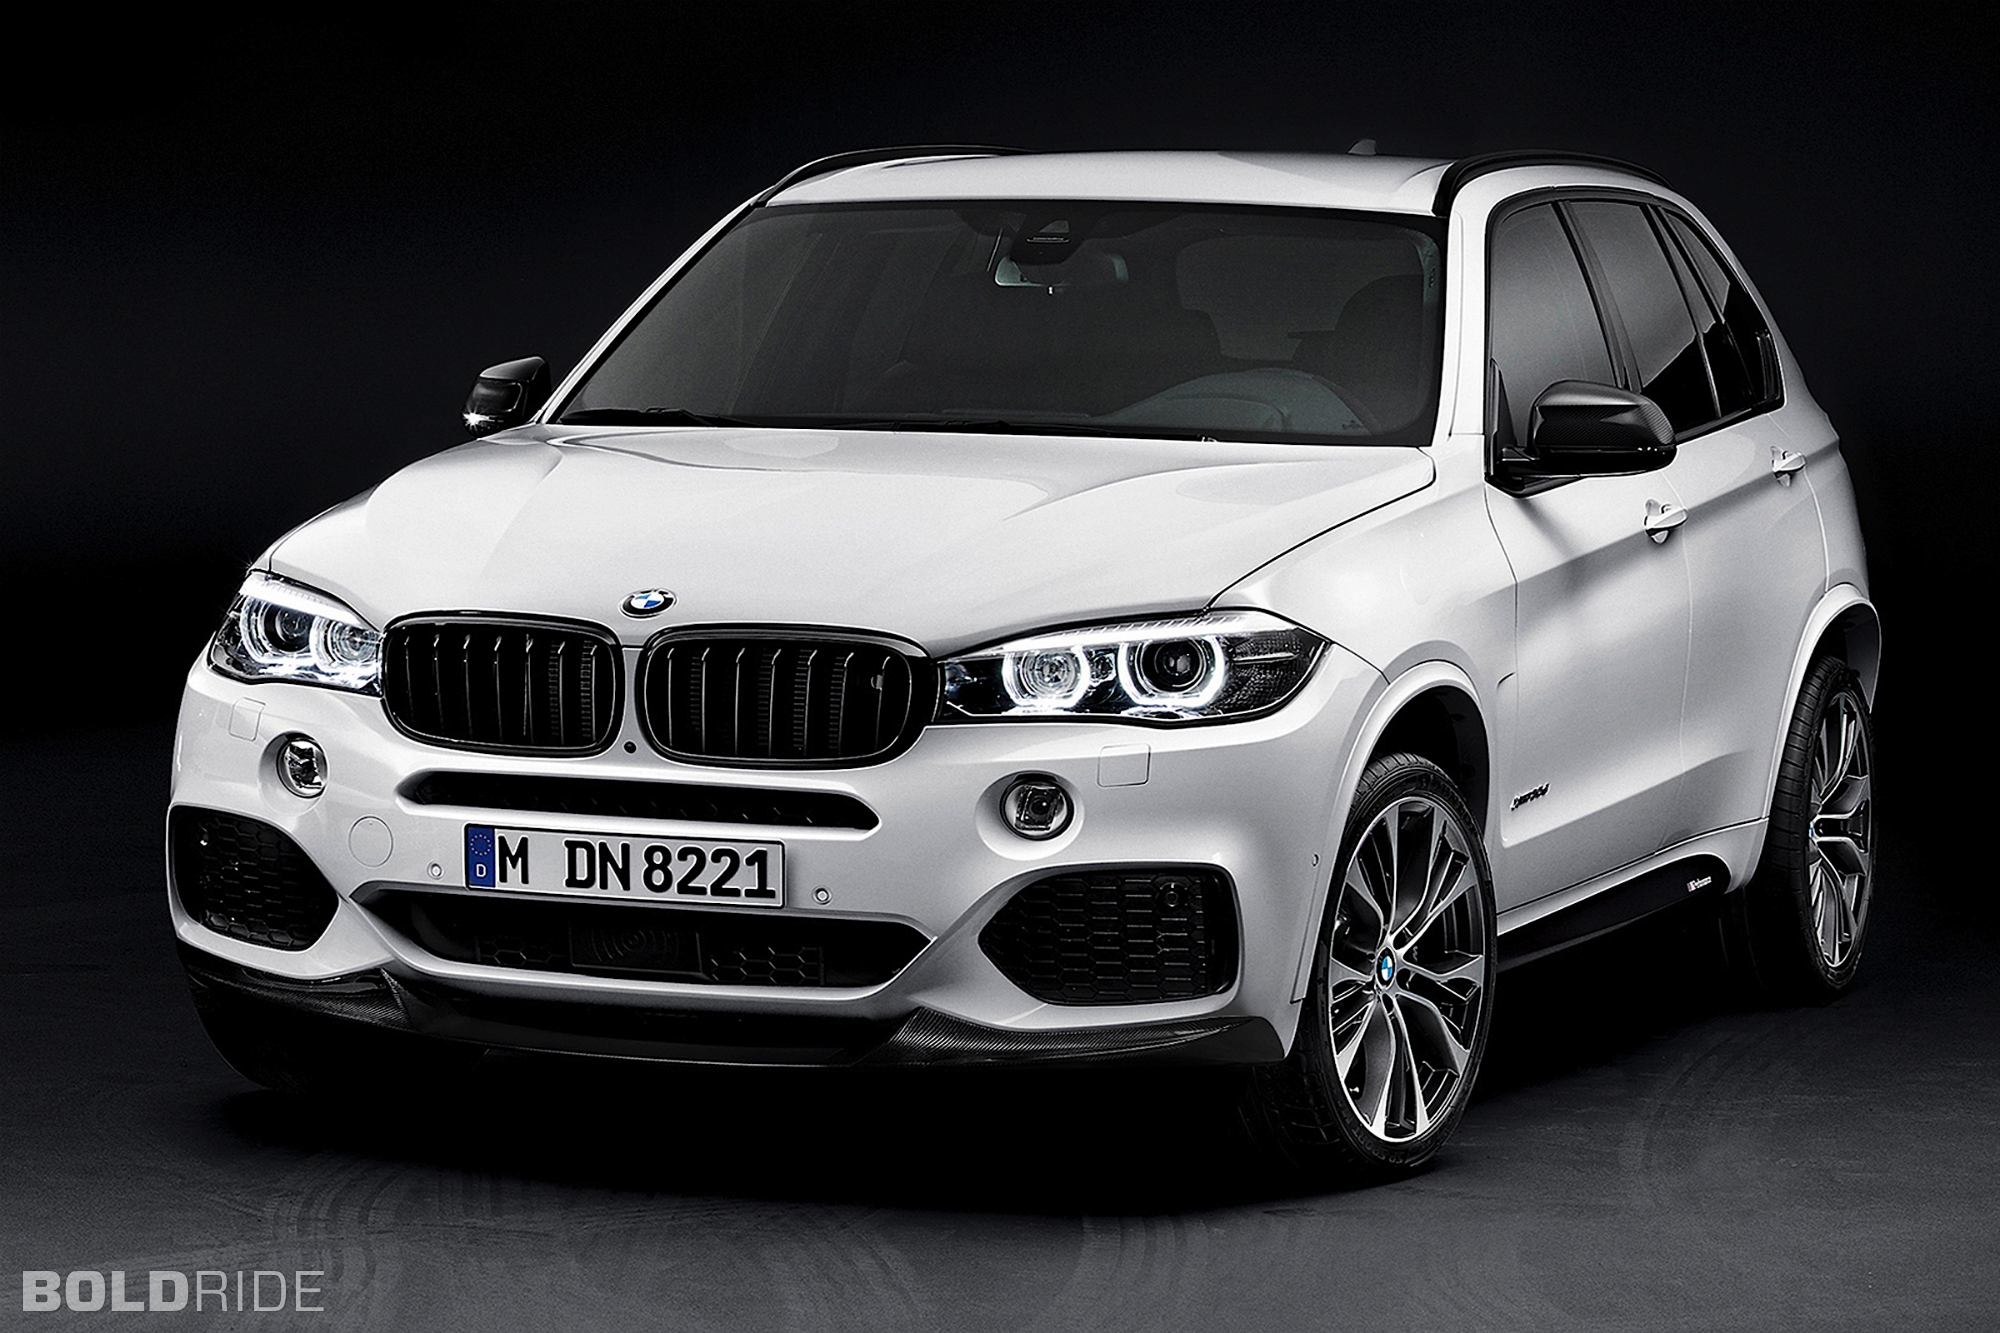 2018 bmw x5 m package car photos catalog 2018. Black Bedroom Furniture Sets. Home Design Ideas